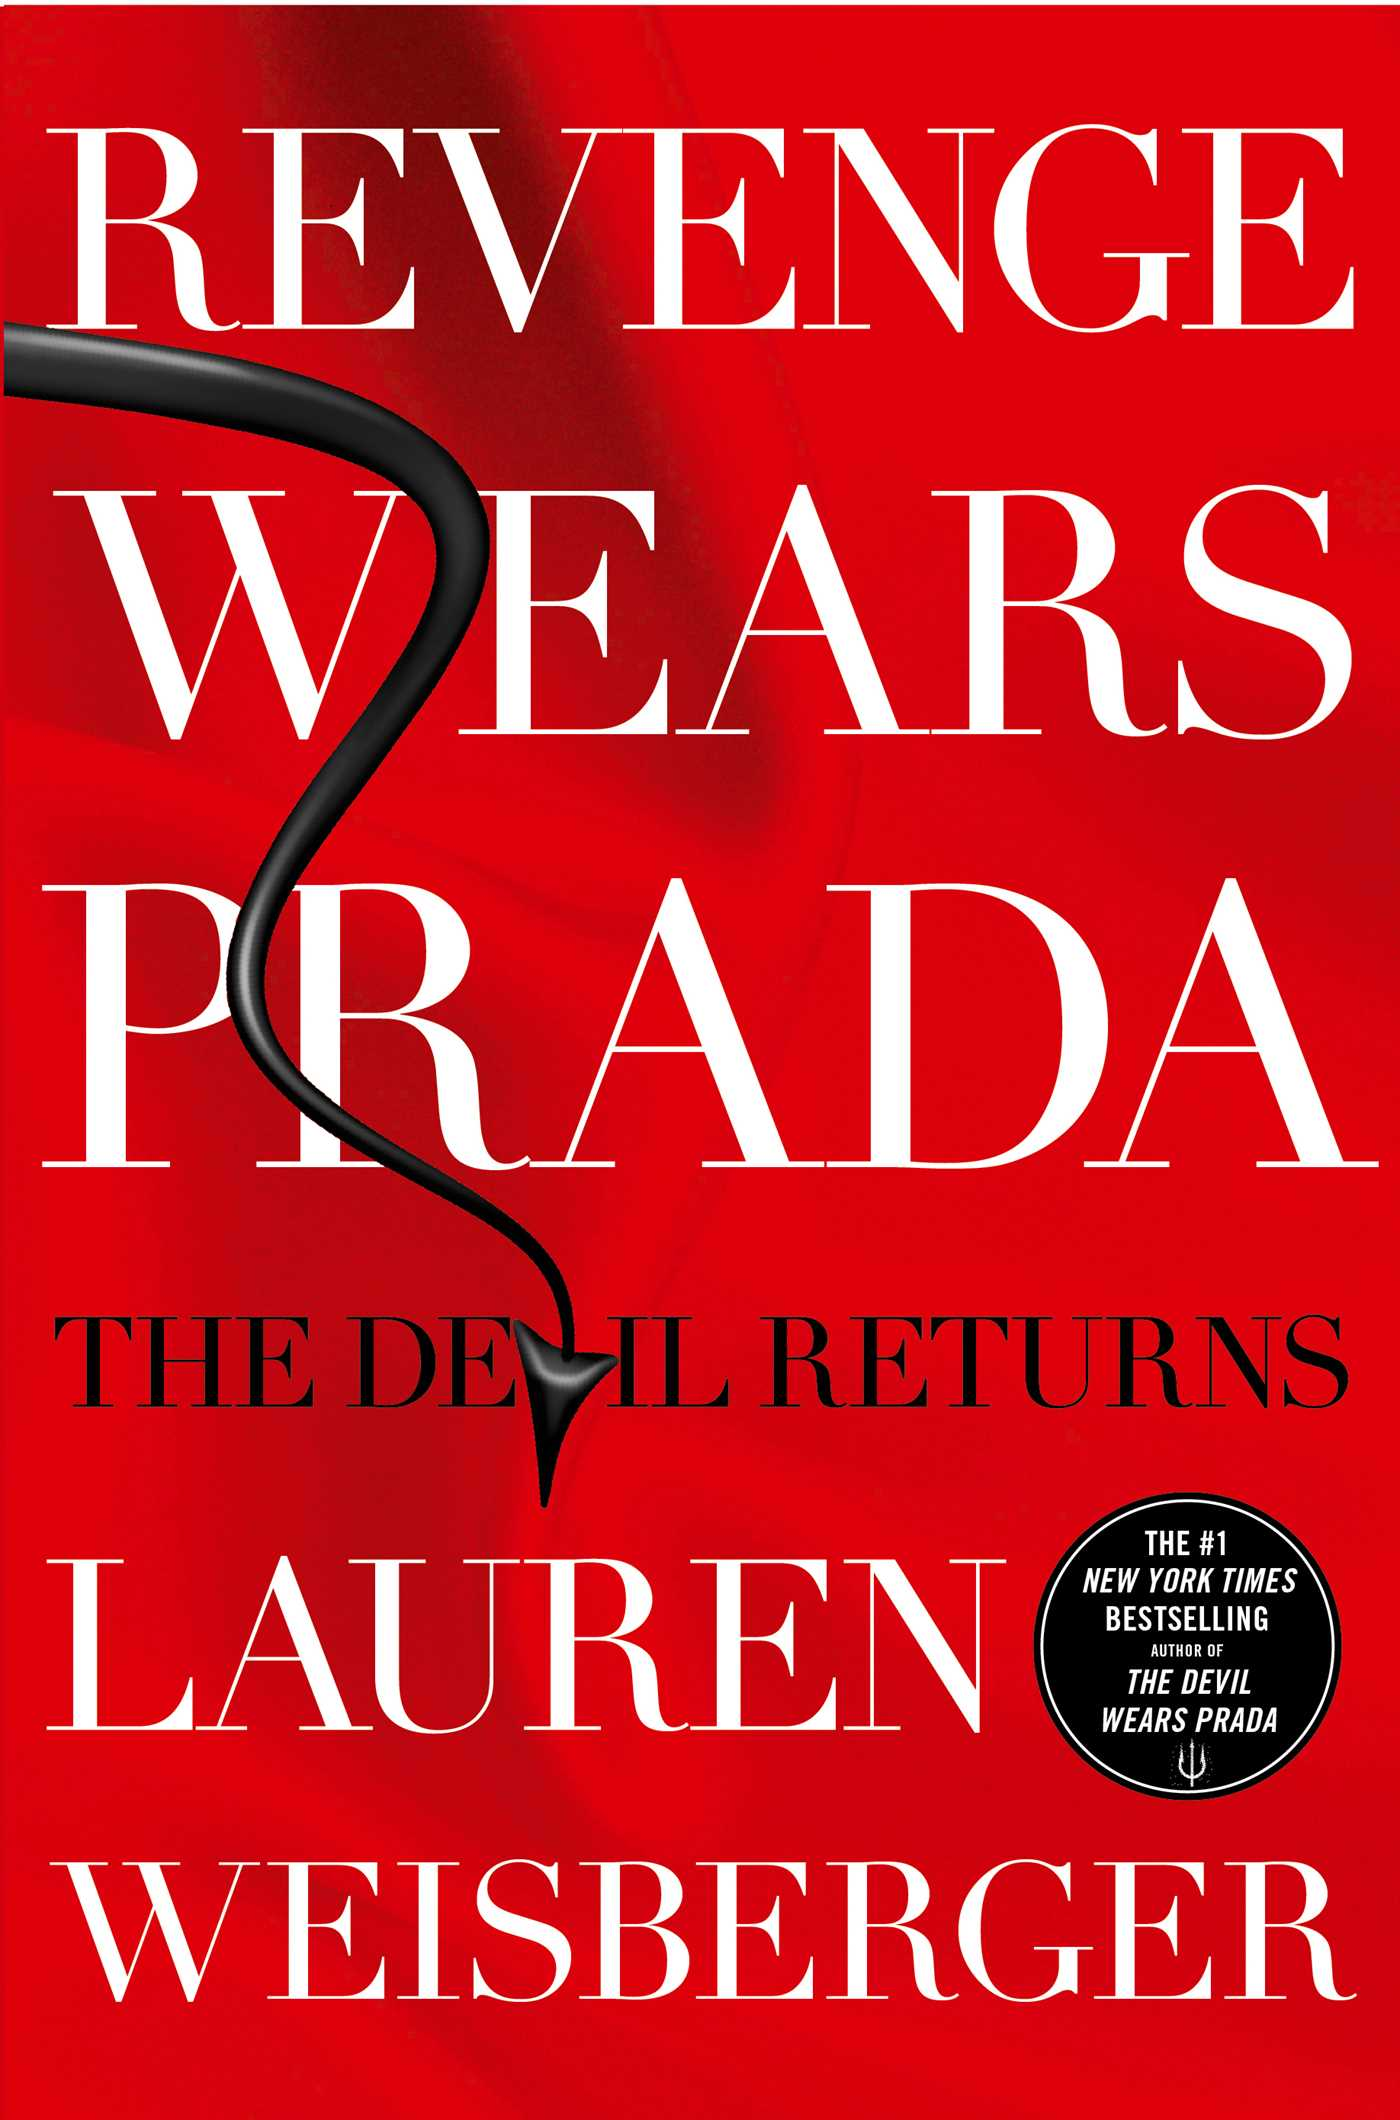 Revenge-wears-prada-special-signed-edition-9781501100215_hr